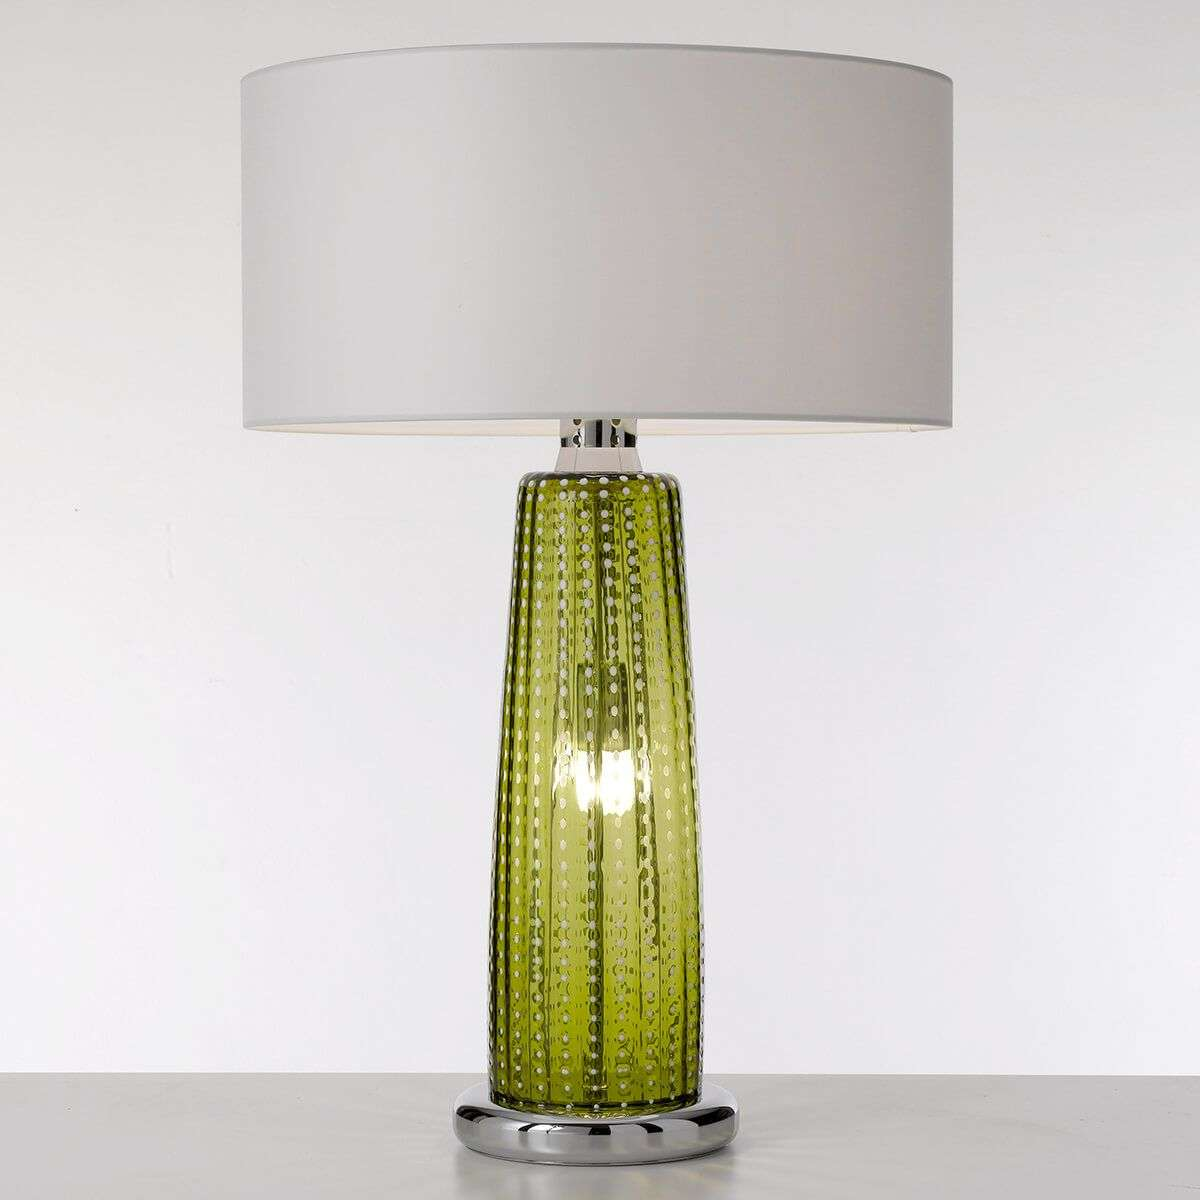 Perle apple green glass table lamp lights perle apple green glass table lamp 1053274 31 aloadofball Gallery